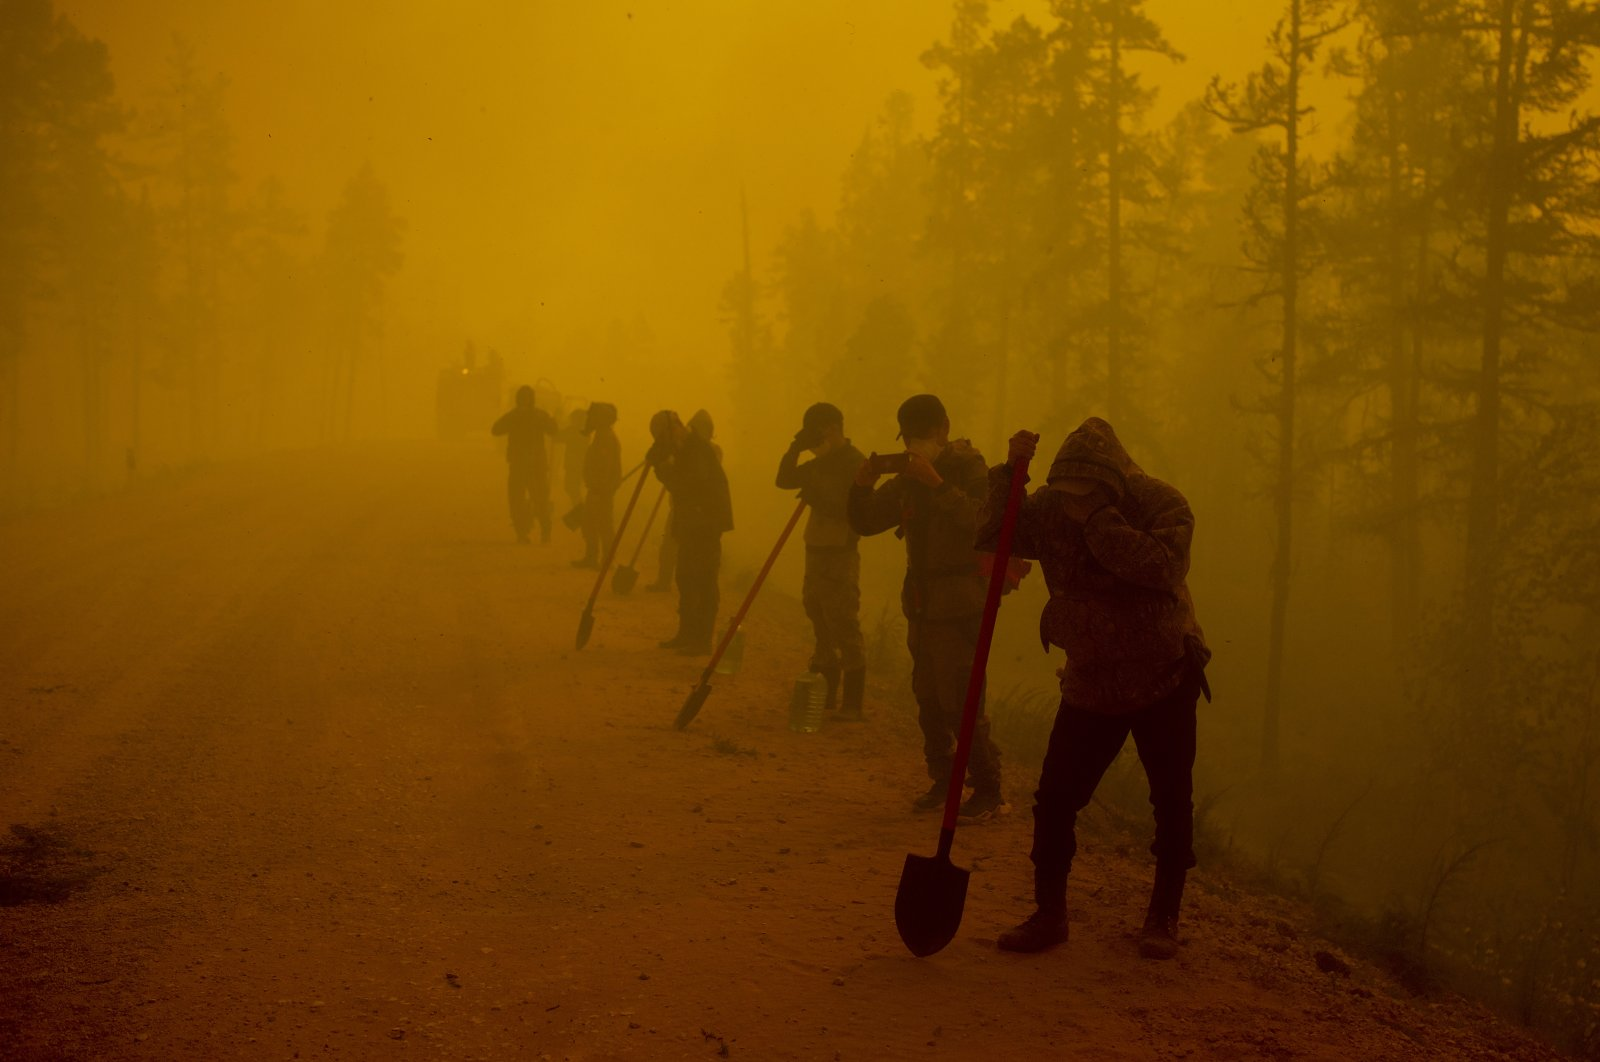 Volunteers pause while working at the scene of forest fire near Kyuyorelyakh village at Gorny Ulus area west of Yakutsk, Russia, Aug. 7, 2021. (AP Photo)